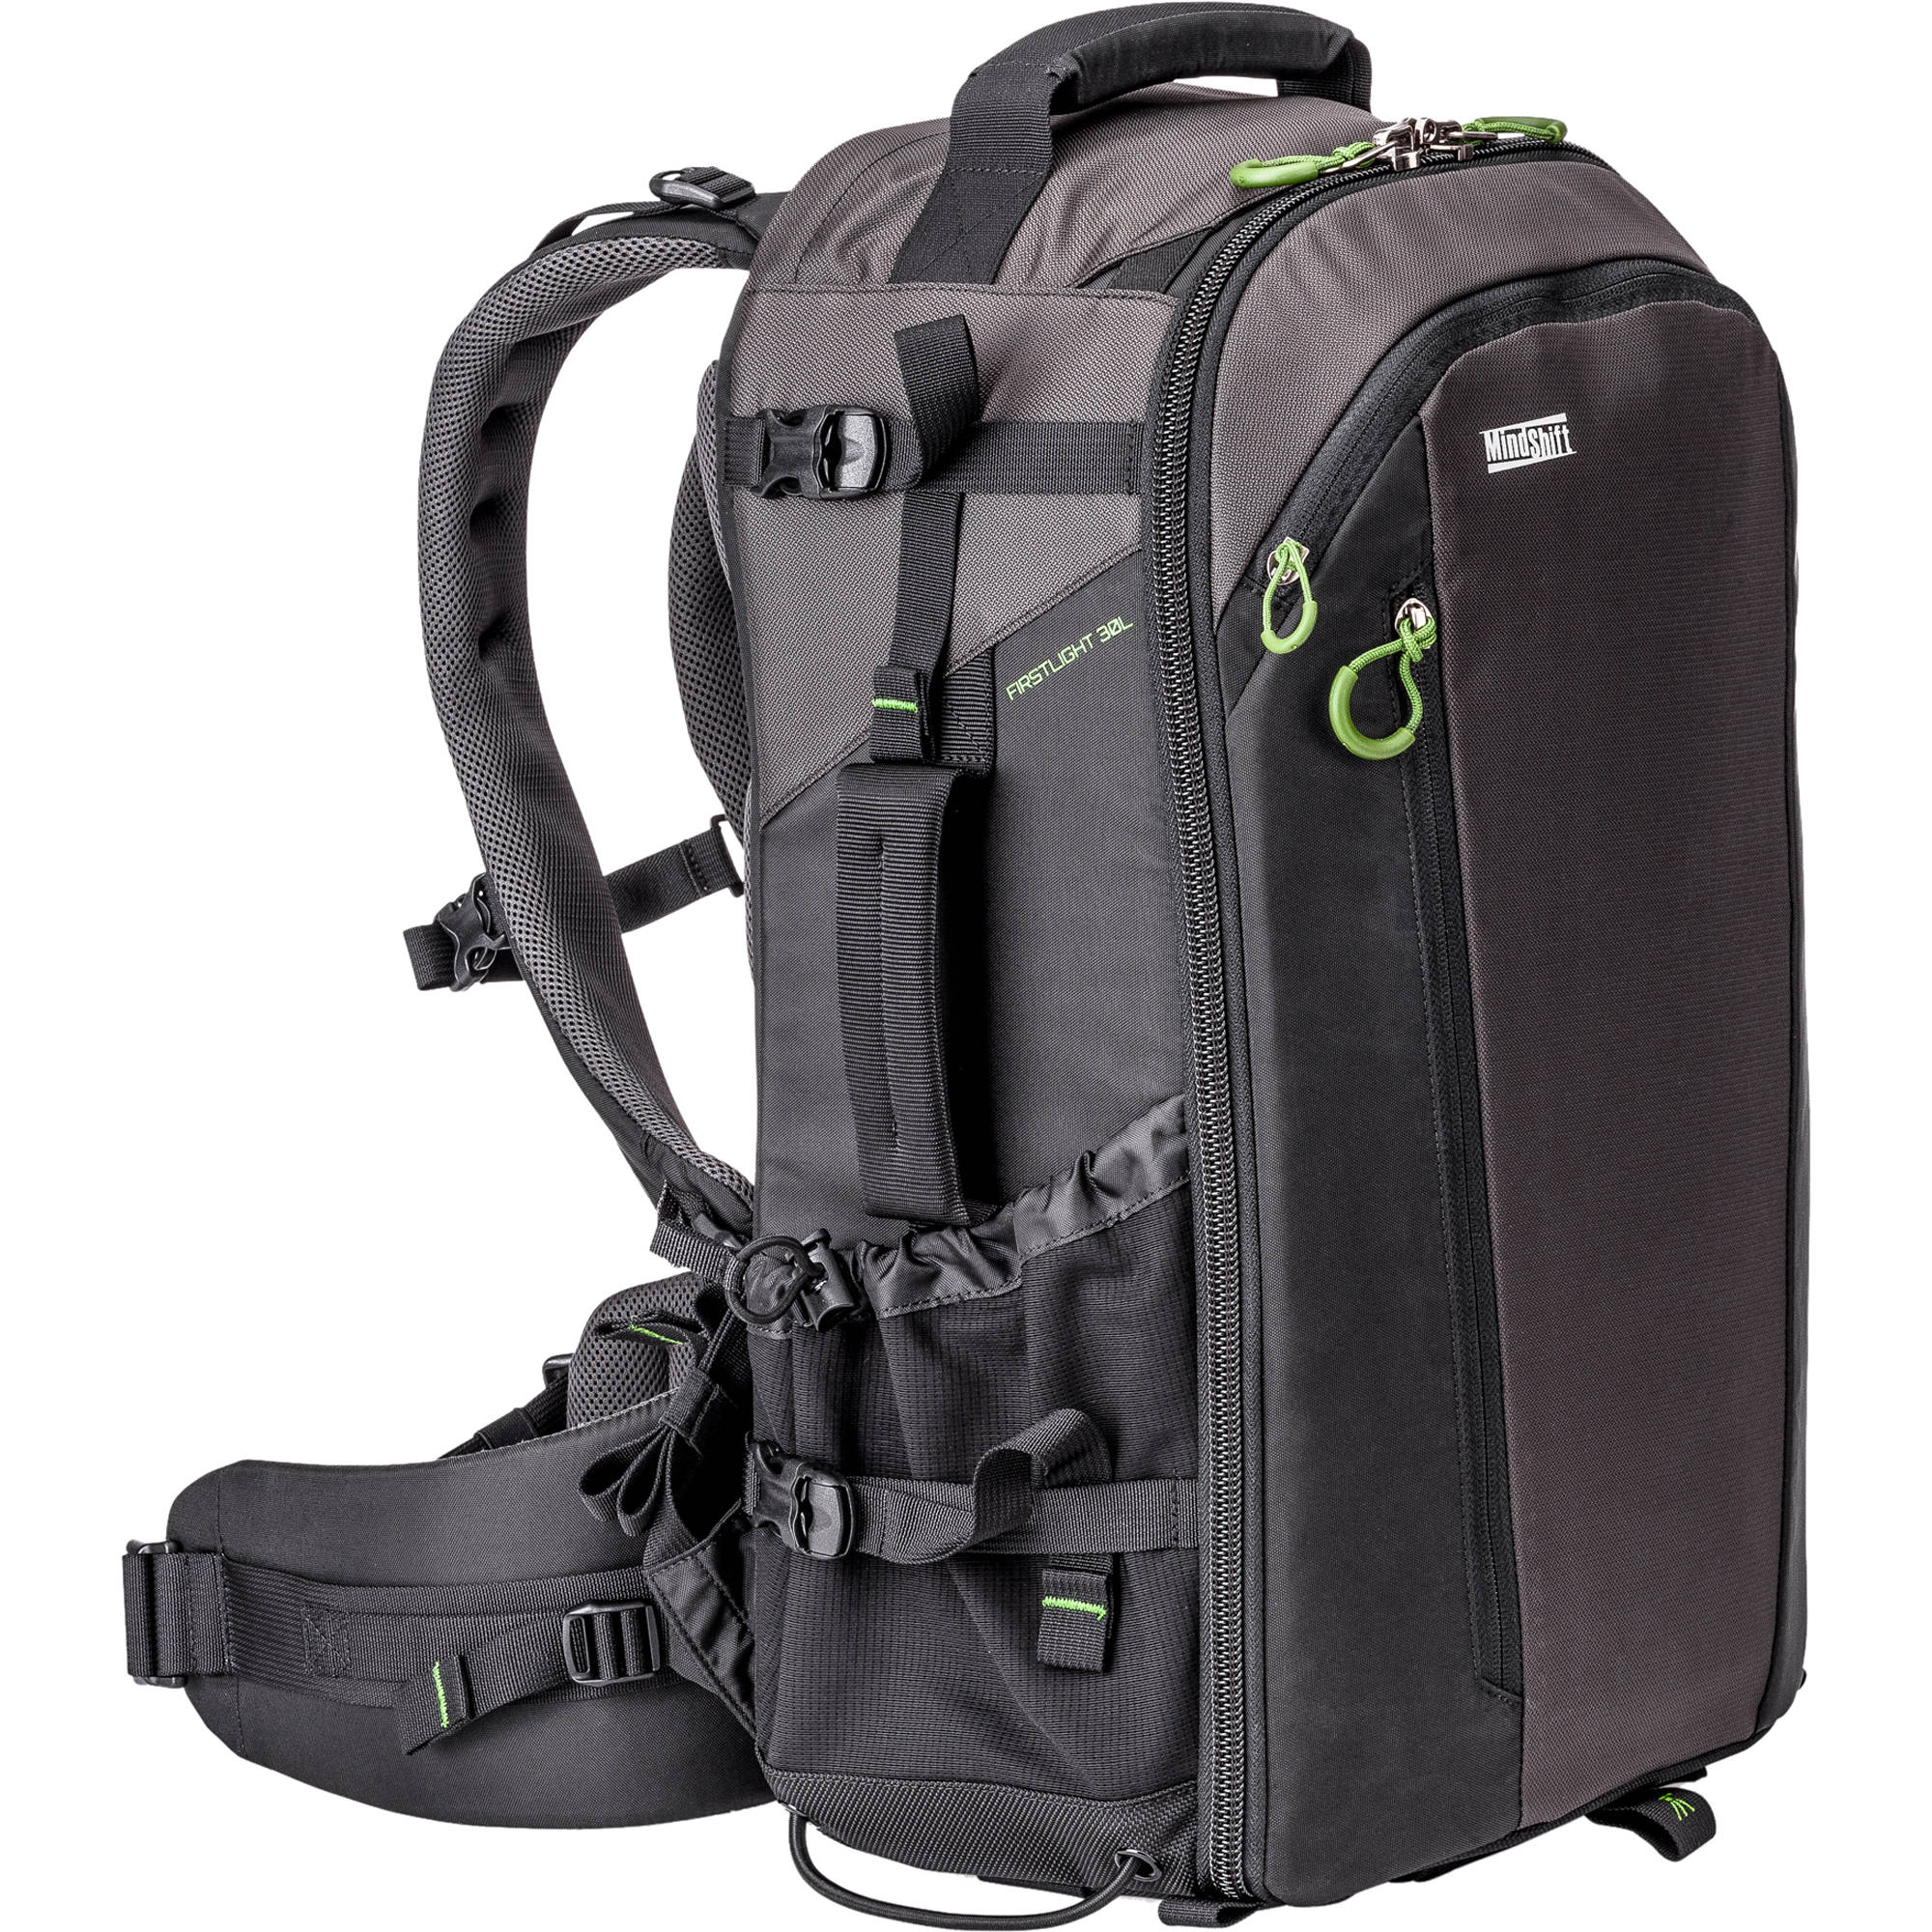 Best Rugged Laptop Backpack | Cg Backpacks